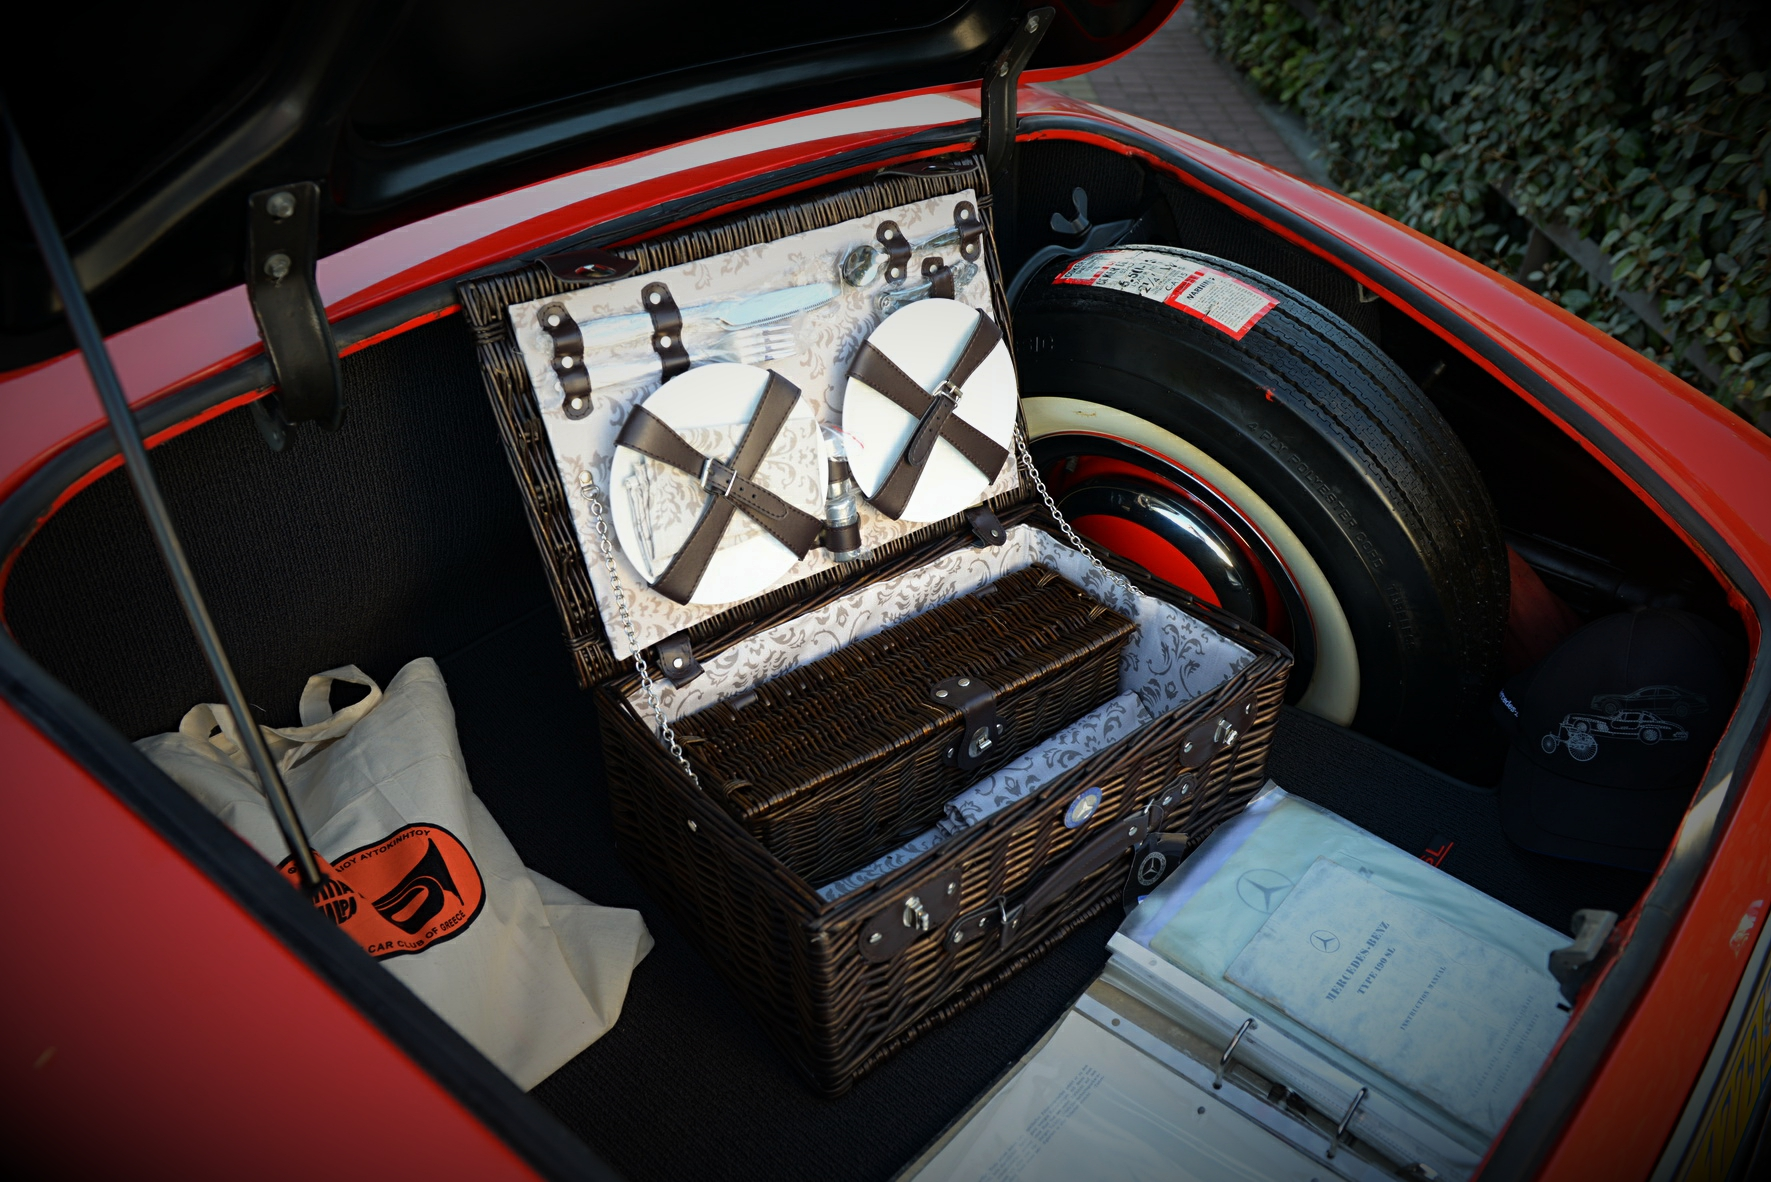 Mercedes Benz pic-nic basket